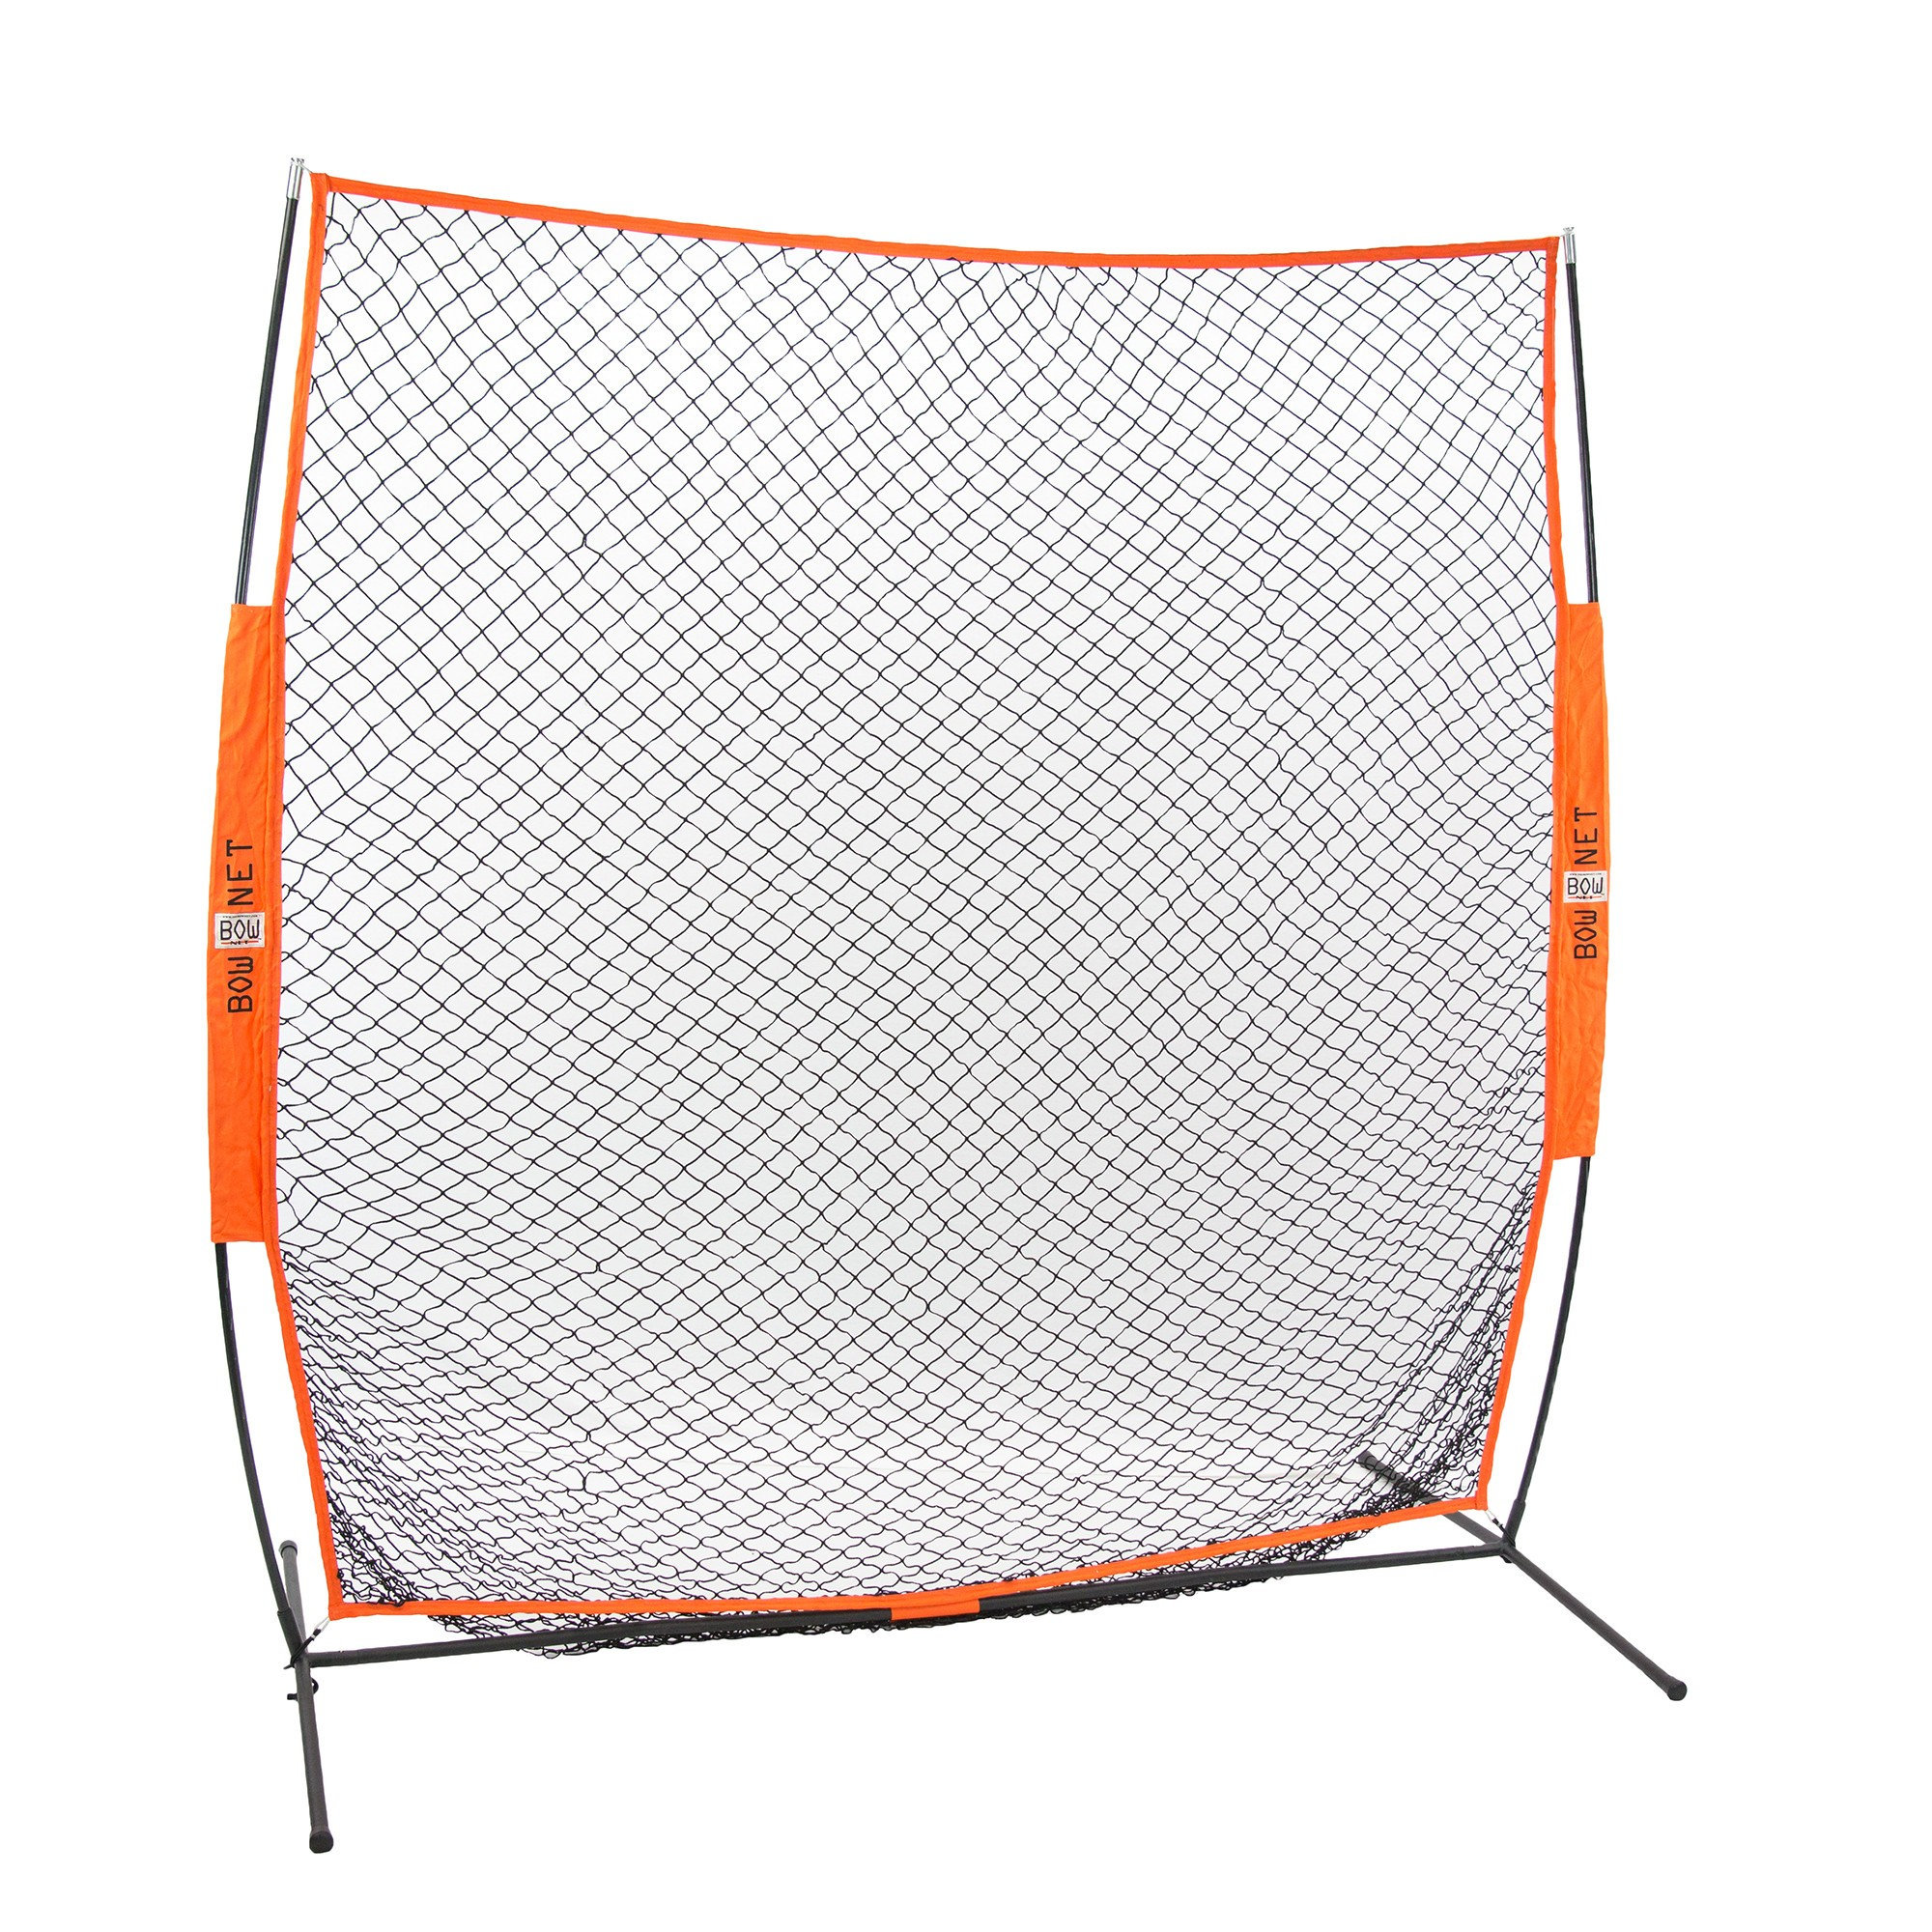 Bownet 8' x 7.5' Soft Toss Pro Training Net